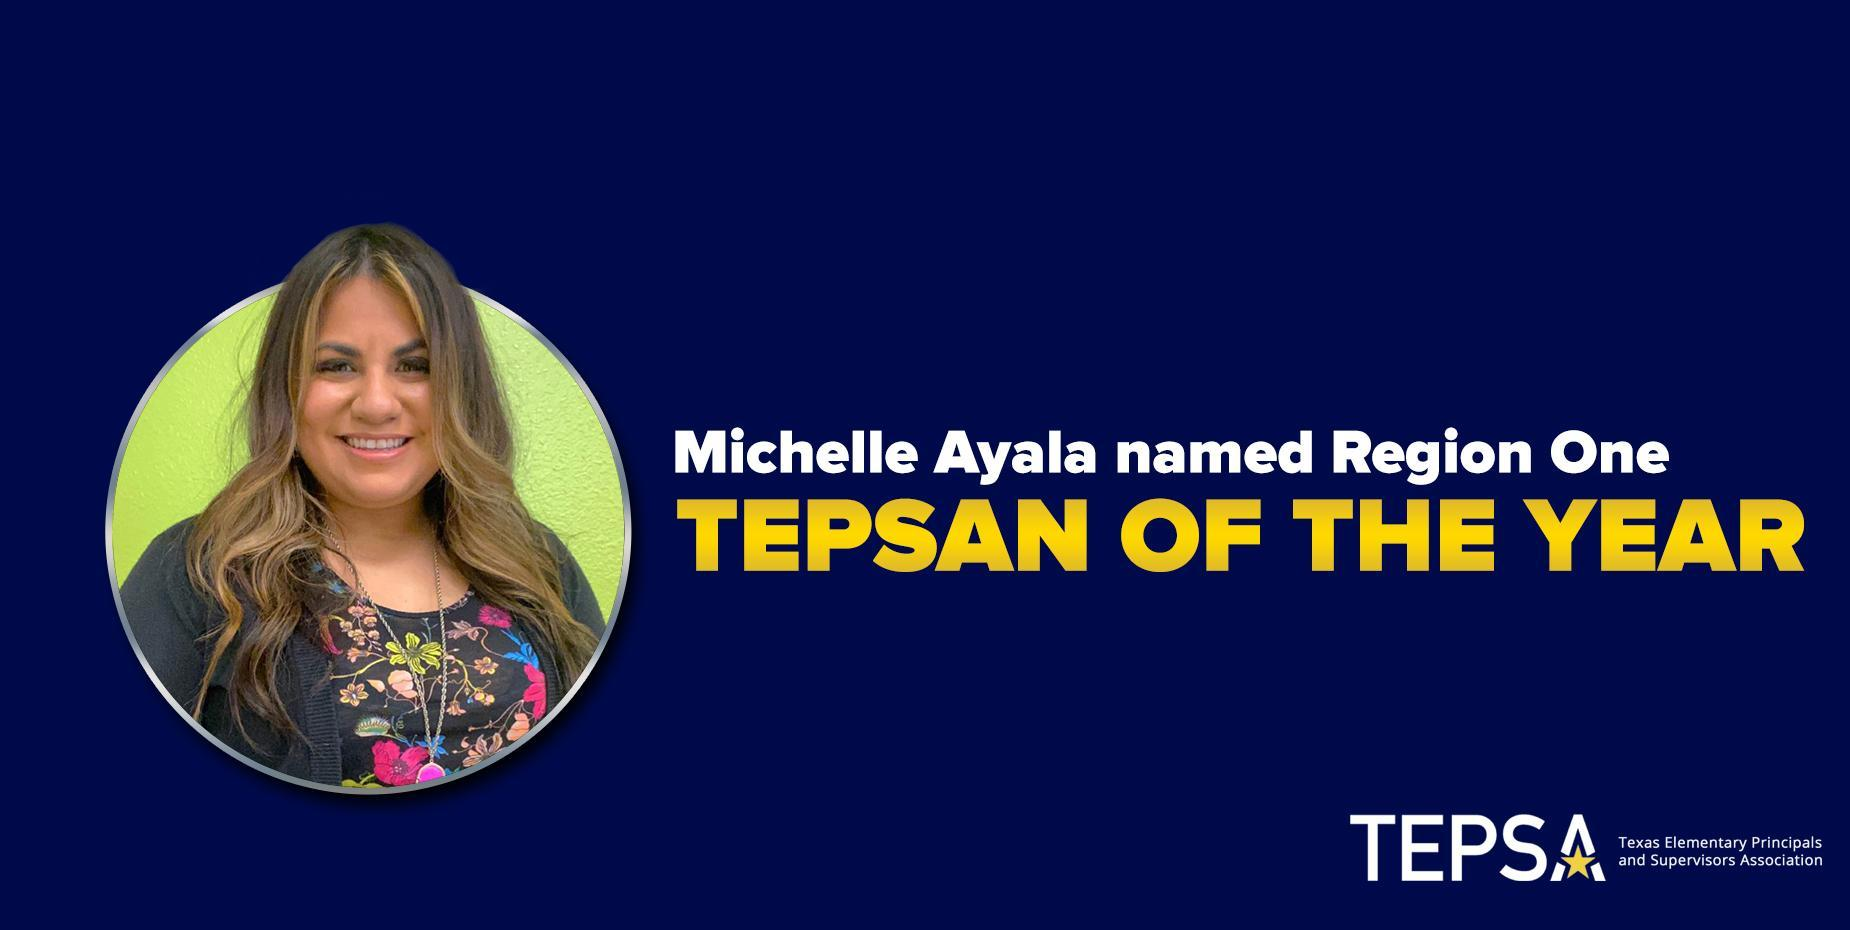 Michelle Ayala named Region One TEPSAN of the Year